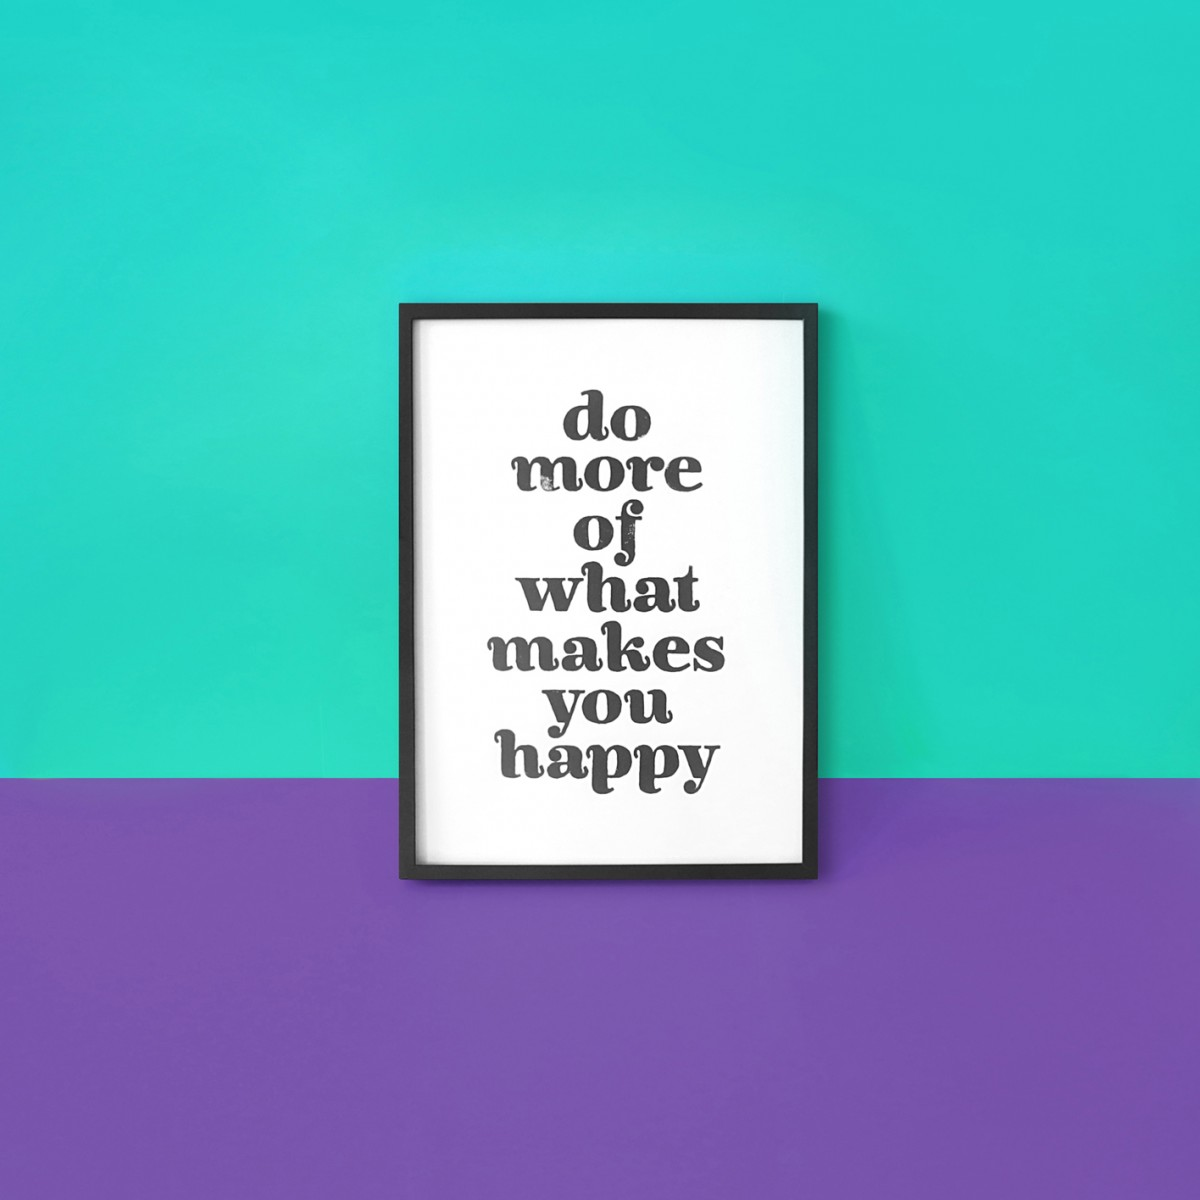 Poster Gerahmt The True Type Linoldruck Do More Of What Makes You Happy Gerahmt Din A4 Poster Print Typografie Design